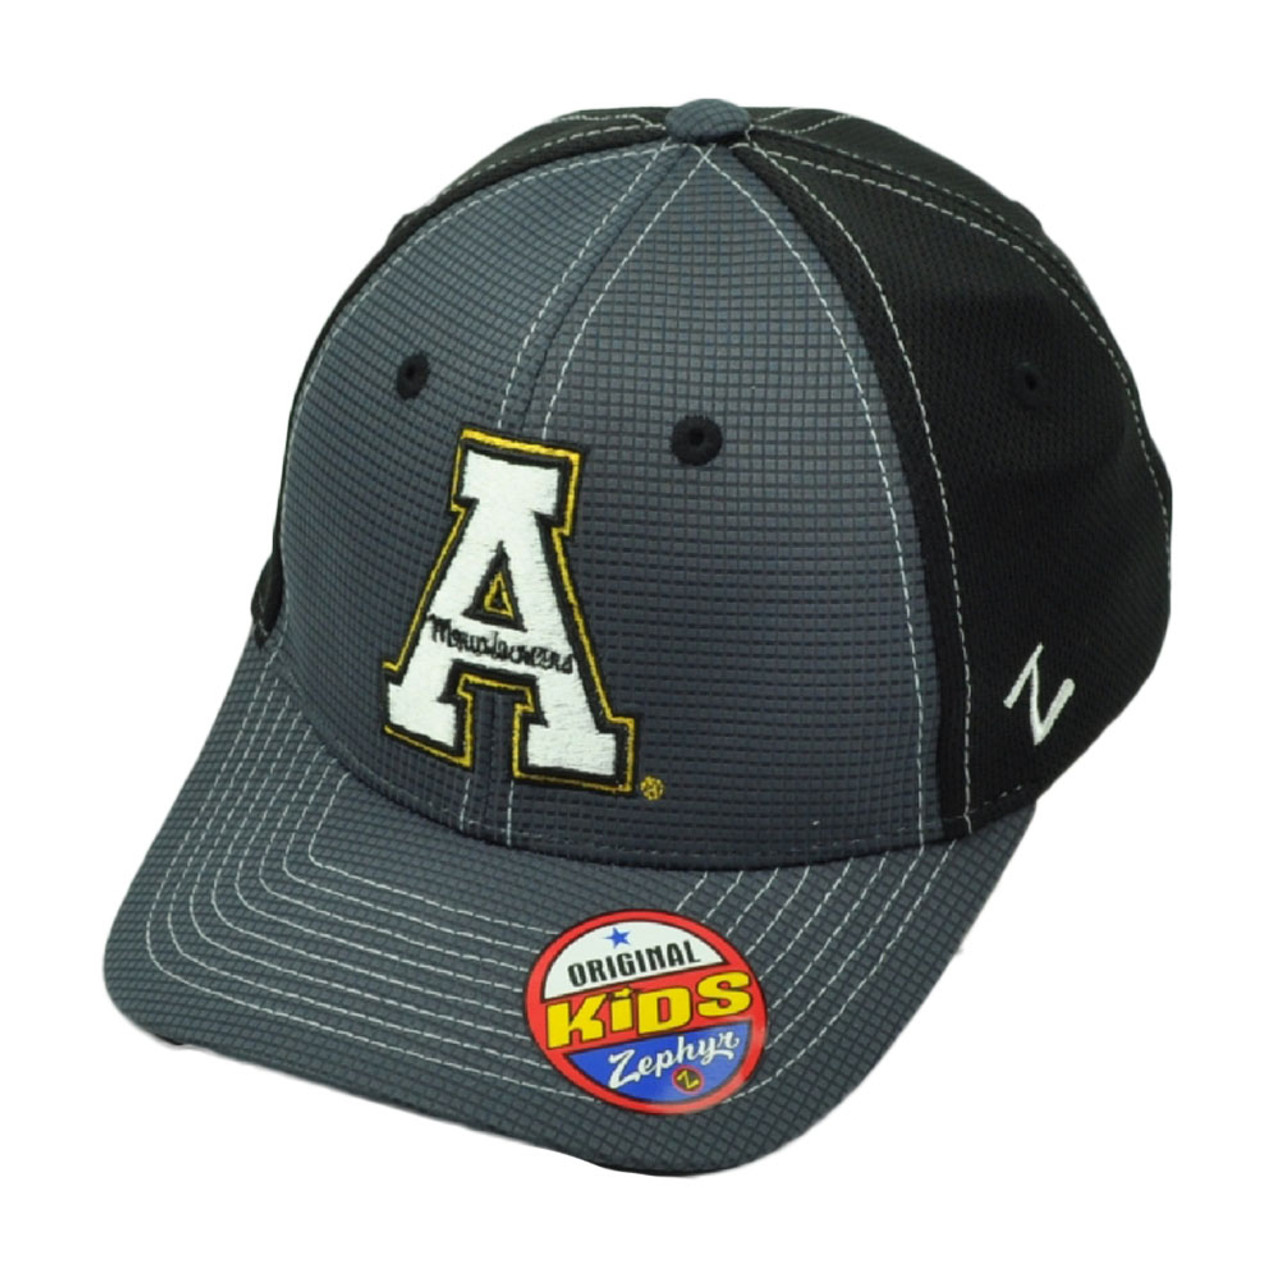 new styles a6409 adee5 NCAA Zephyr Appalachian State Mountaineers Flex Fit Youth Kids Jersey Mesh  Hat